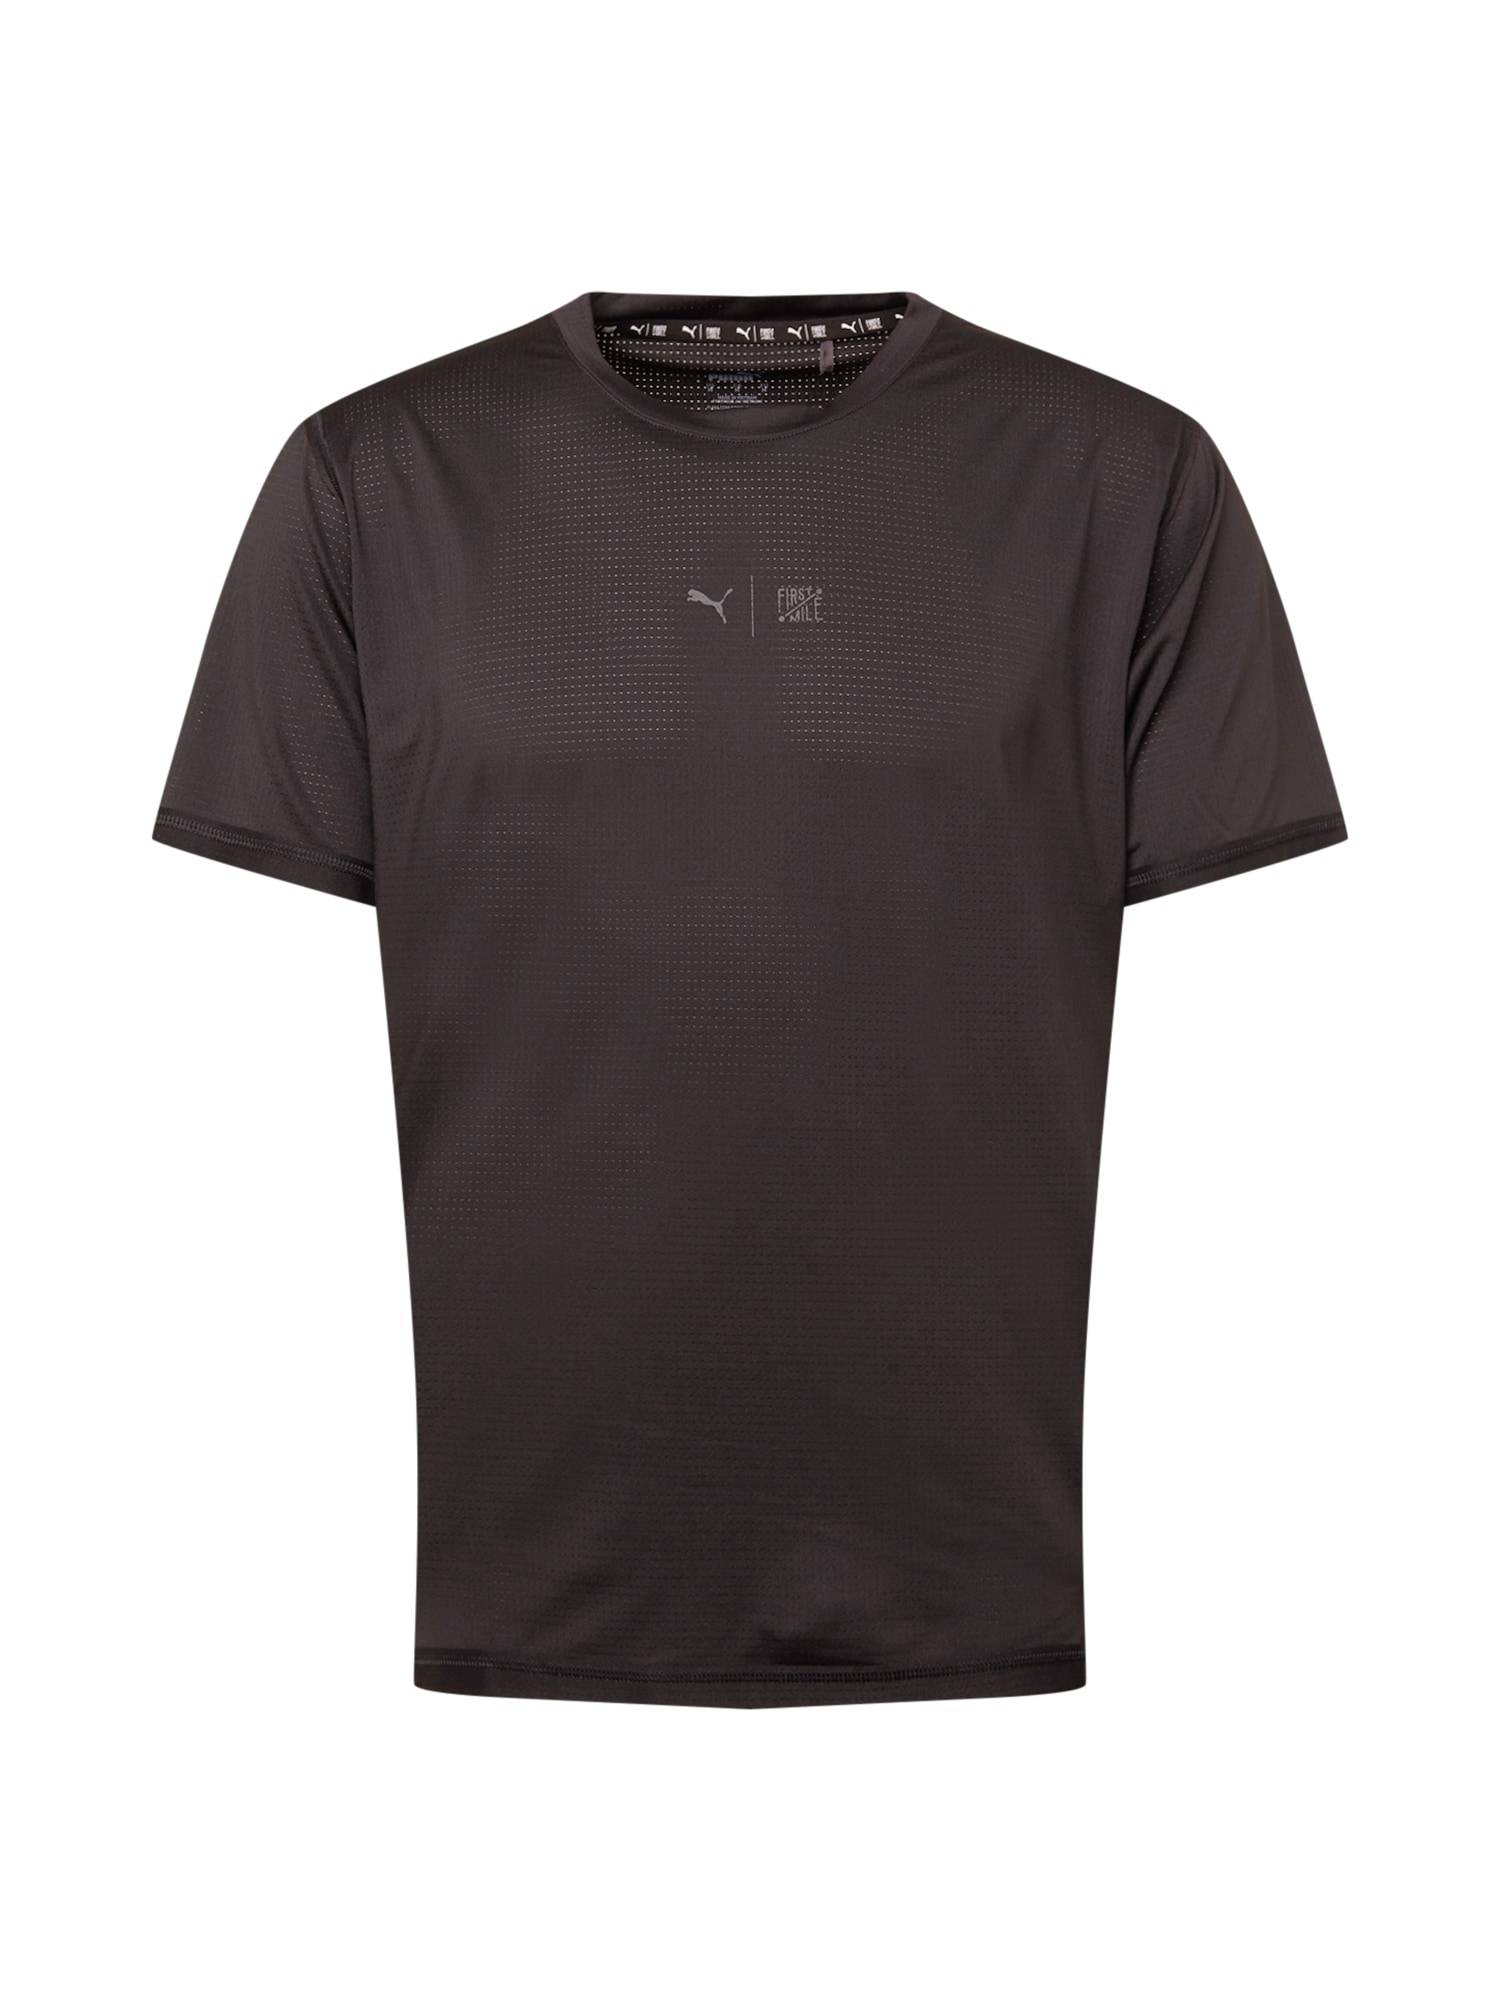 PUMA T-Shirt fonctionnel 'TRAIN FIRST MILE'  - Noir - Taille: S - male